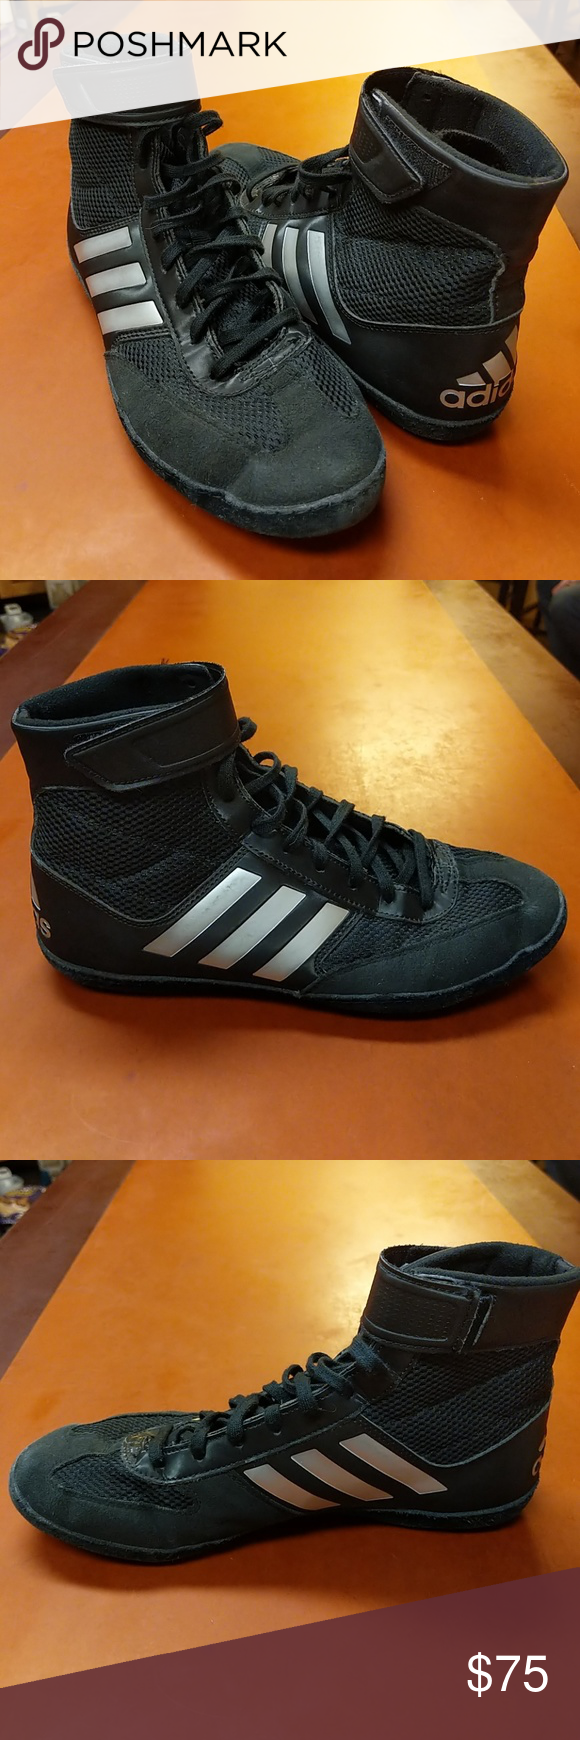 new product f85b2 a5660 Adidas Combat Speed 5 Wrestling Shoes 9 9.5 The original competition  wrestling shoe. The